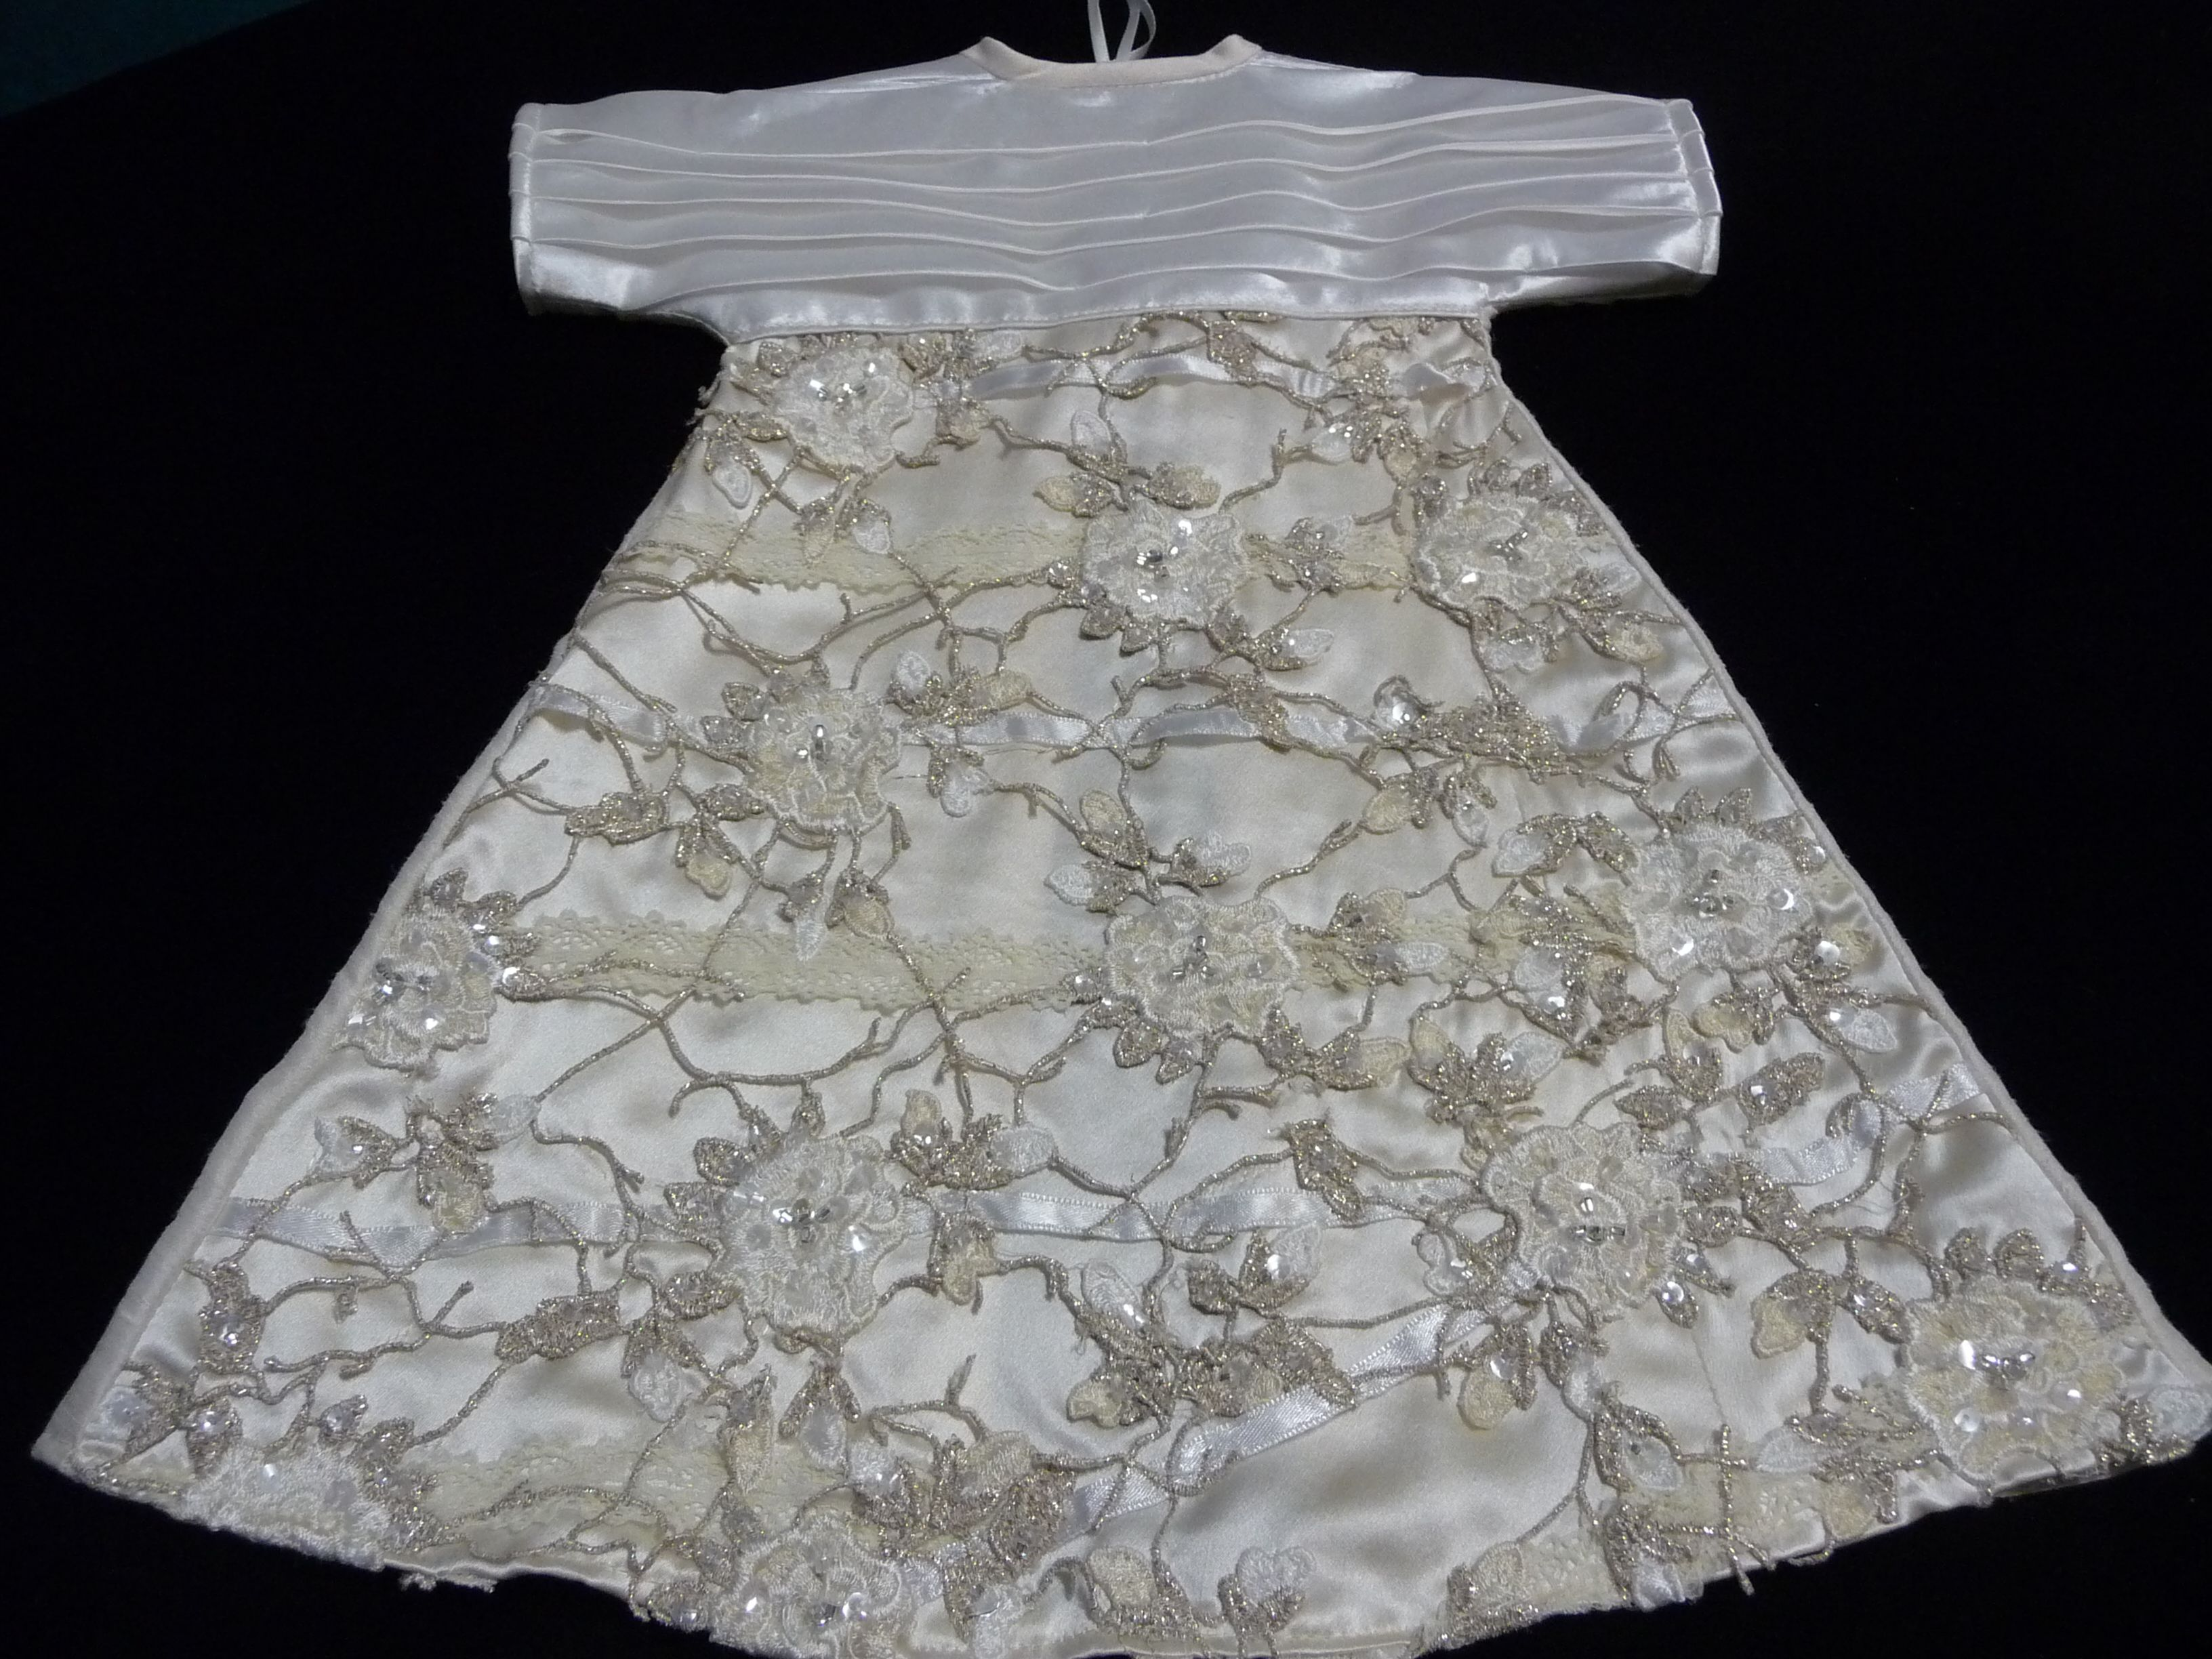 Angel gown with heavily embellished skirt.